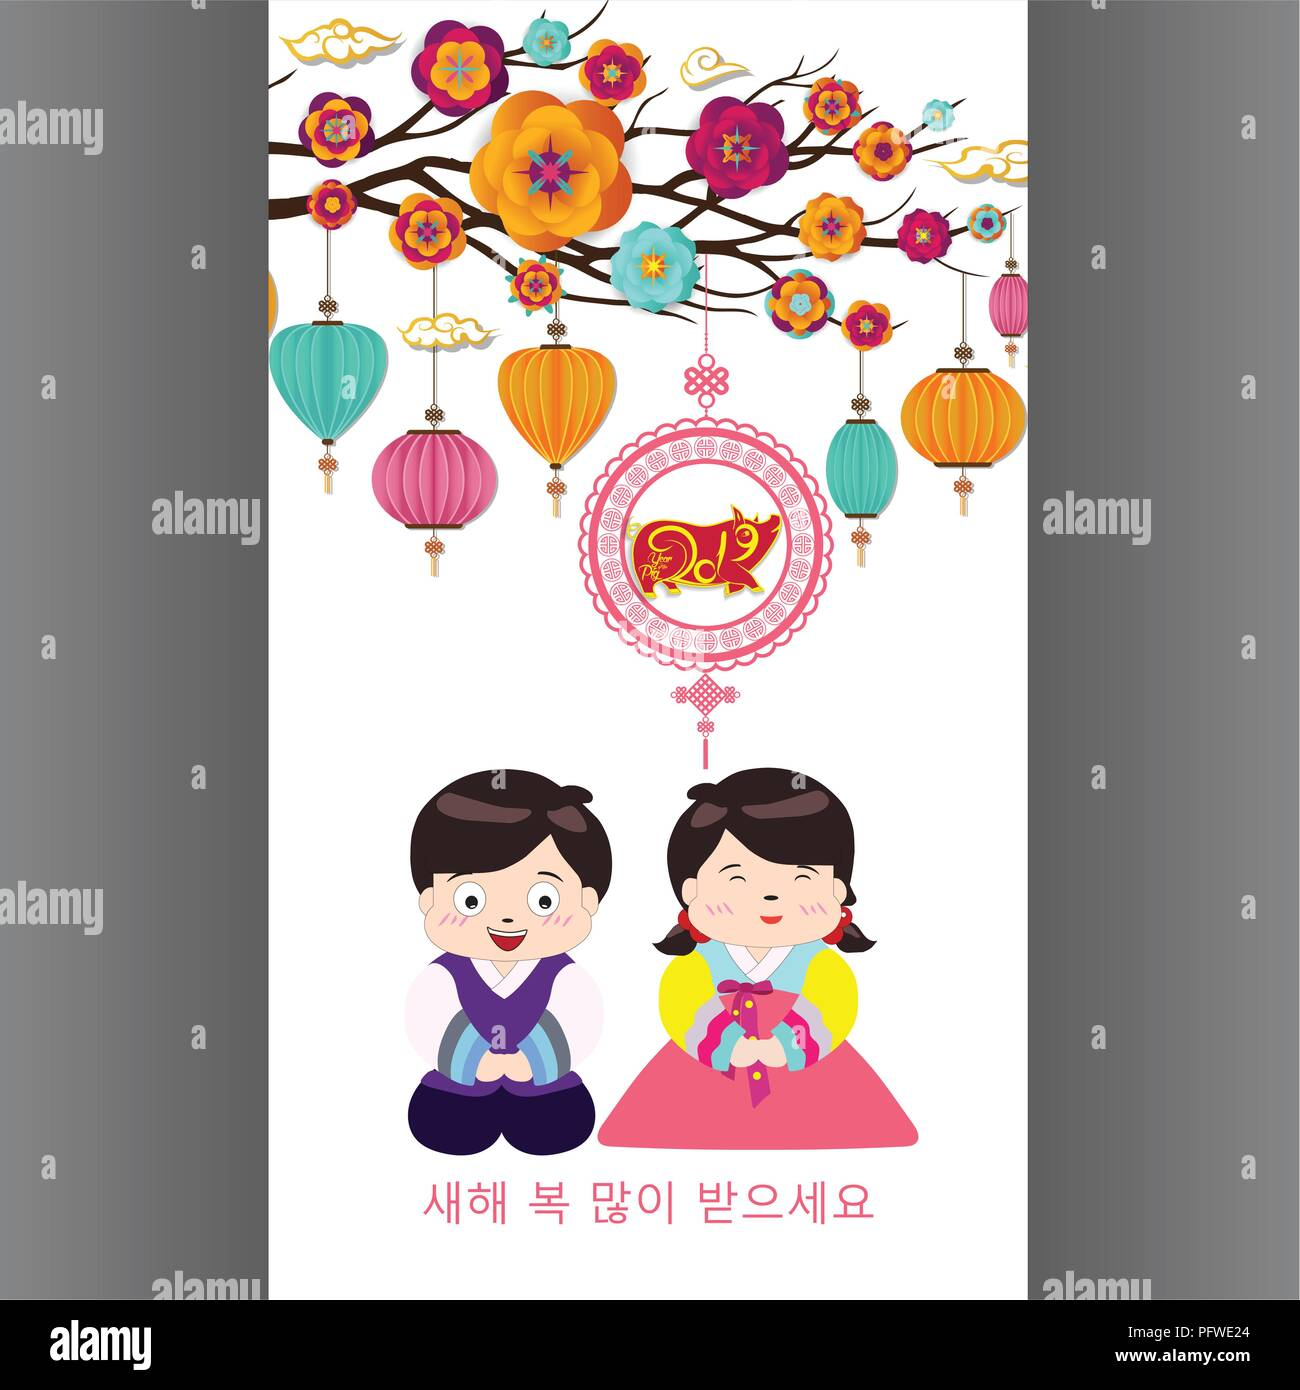 Card Template Childrens Day Stockfotos & Card Template Childrens Day ...